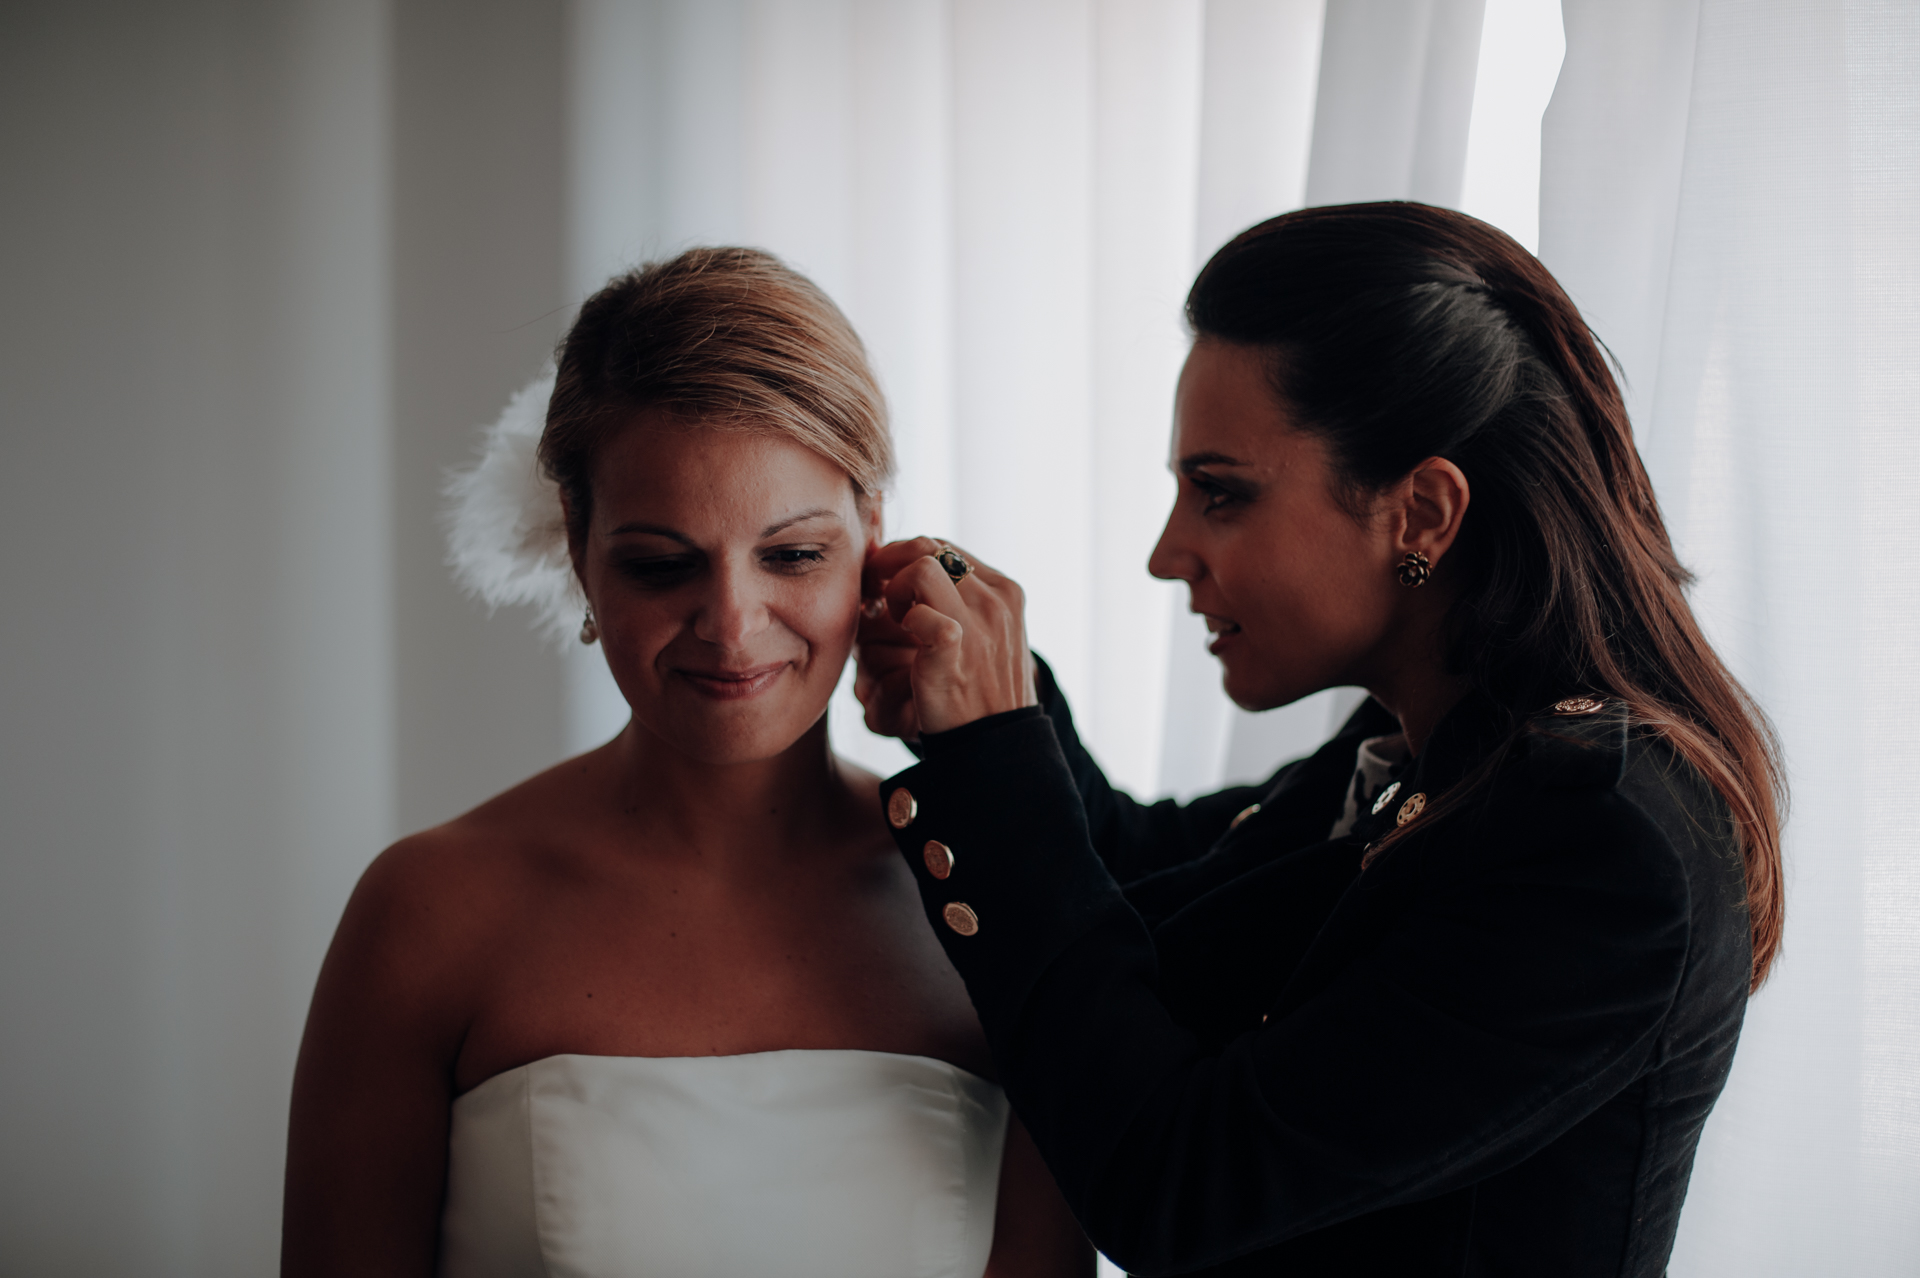 Lisbon, Portugal Wedding Photographers | The maid of honor fastens the bride's earrings